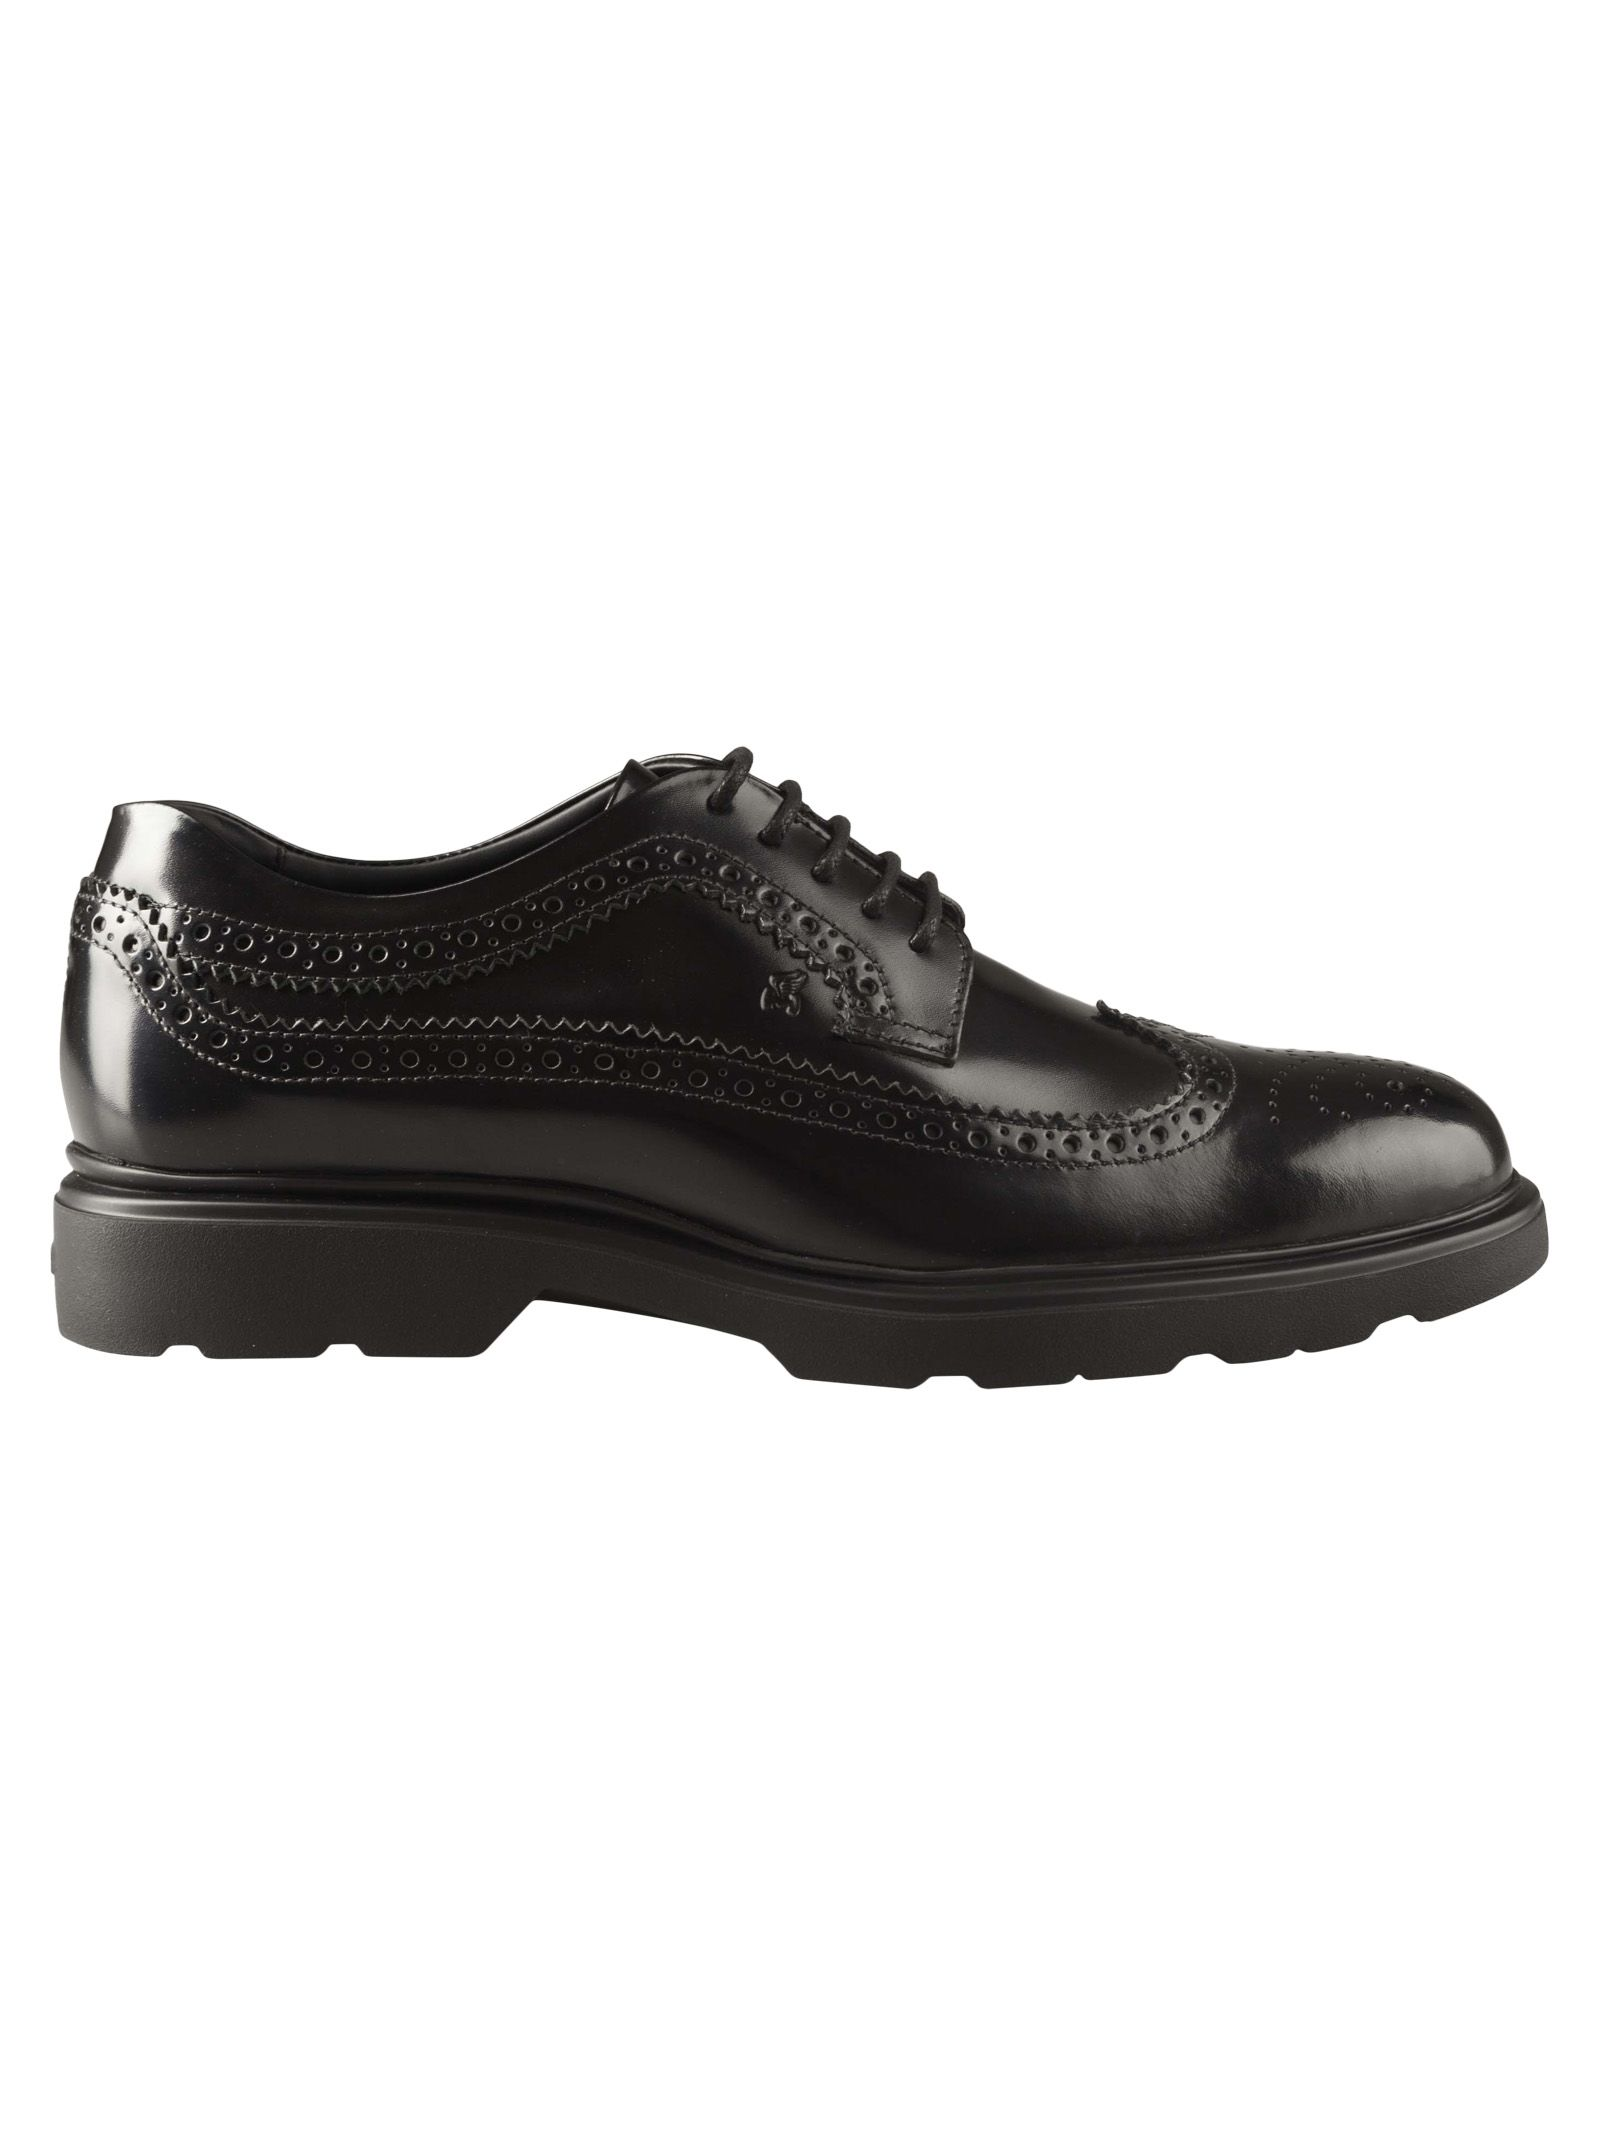 Hogan Perforated Lace Up Shoes